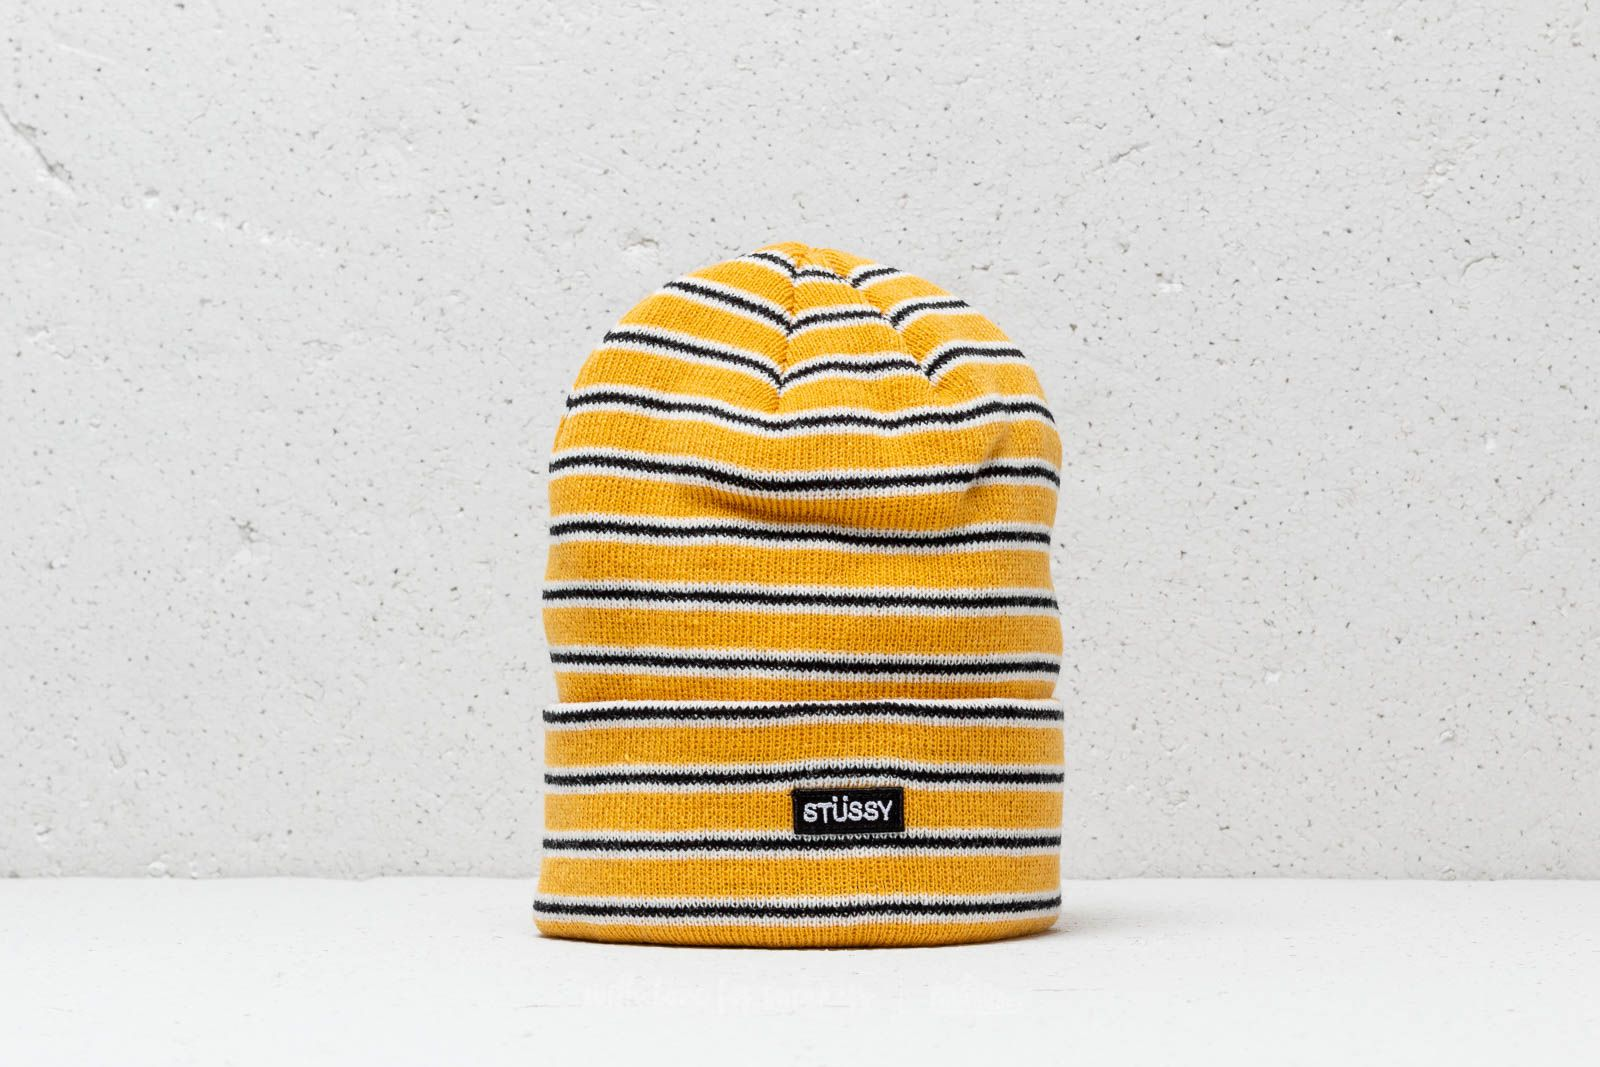 c4d4785c6a9 Stüssy Striped Fa18 Cuff Beanie Yellow at a great price £20 buy at Footshop